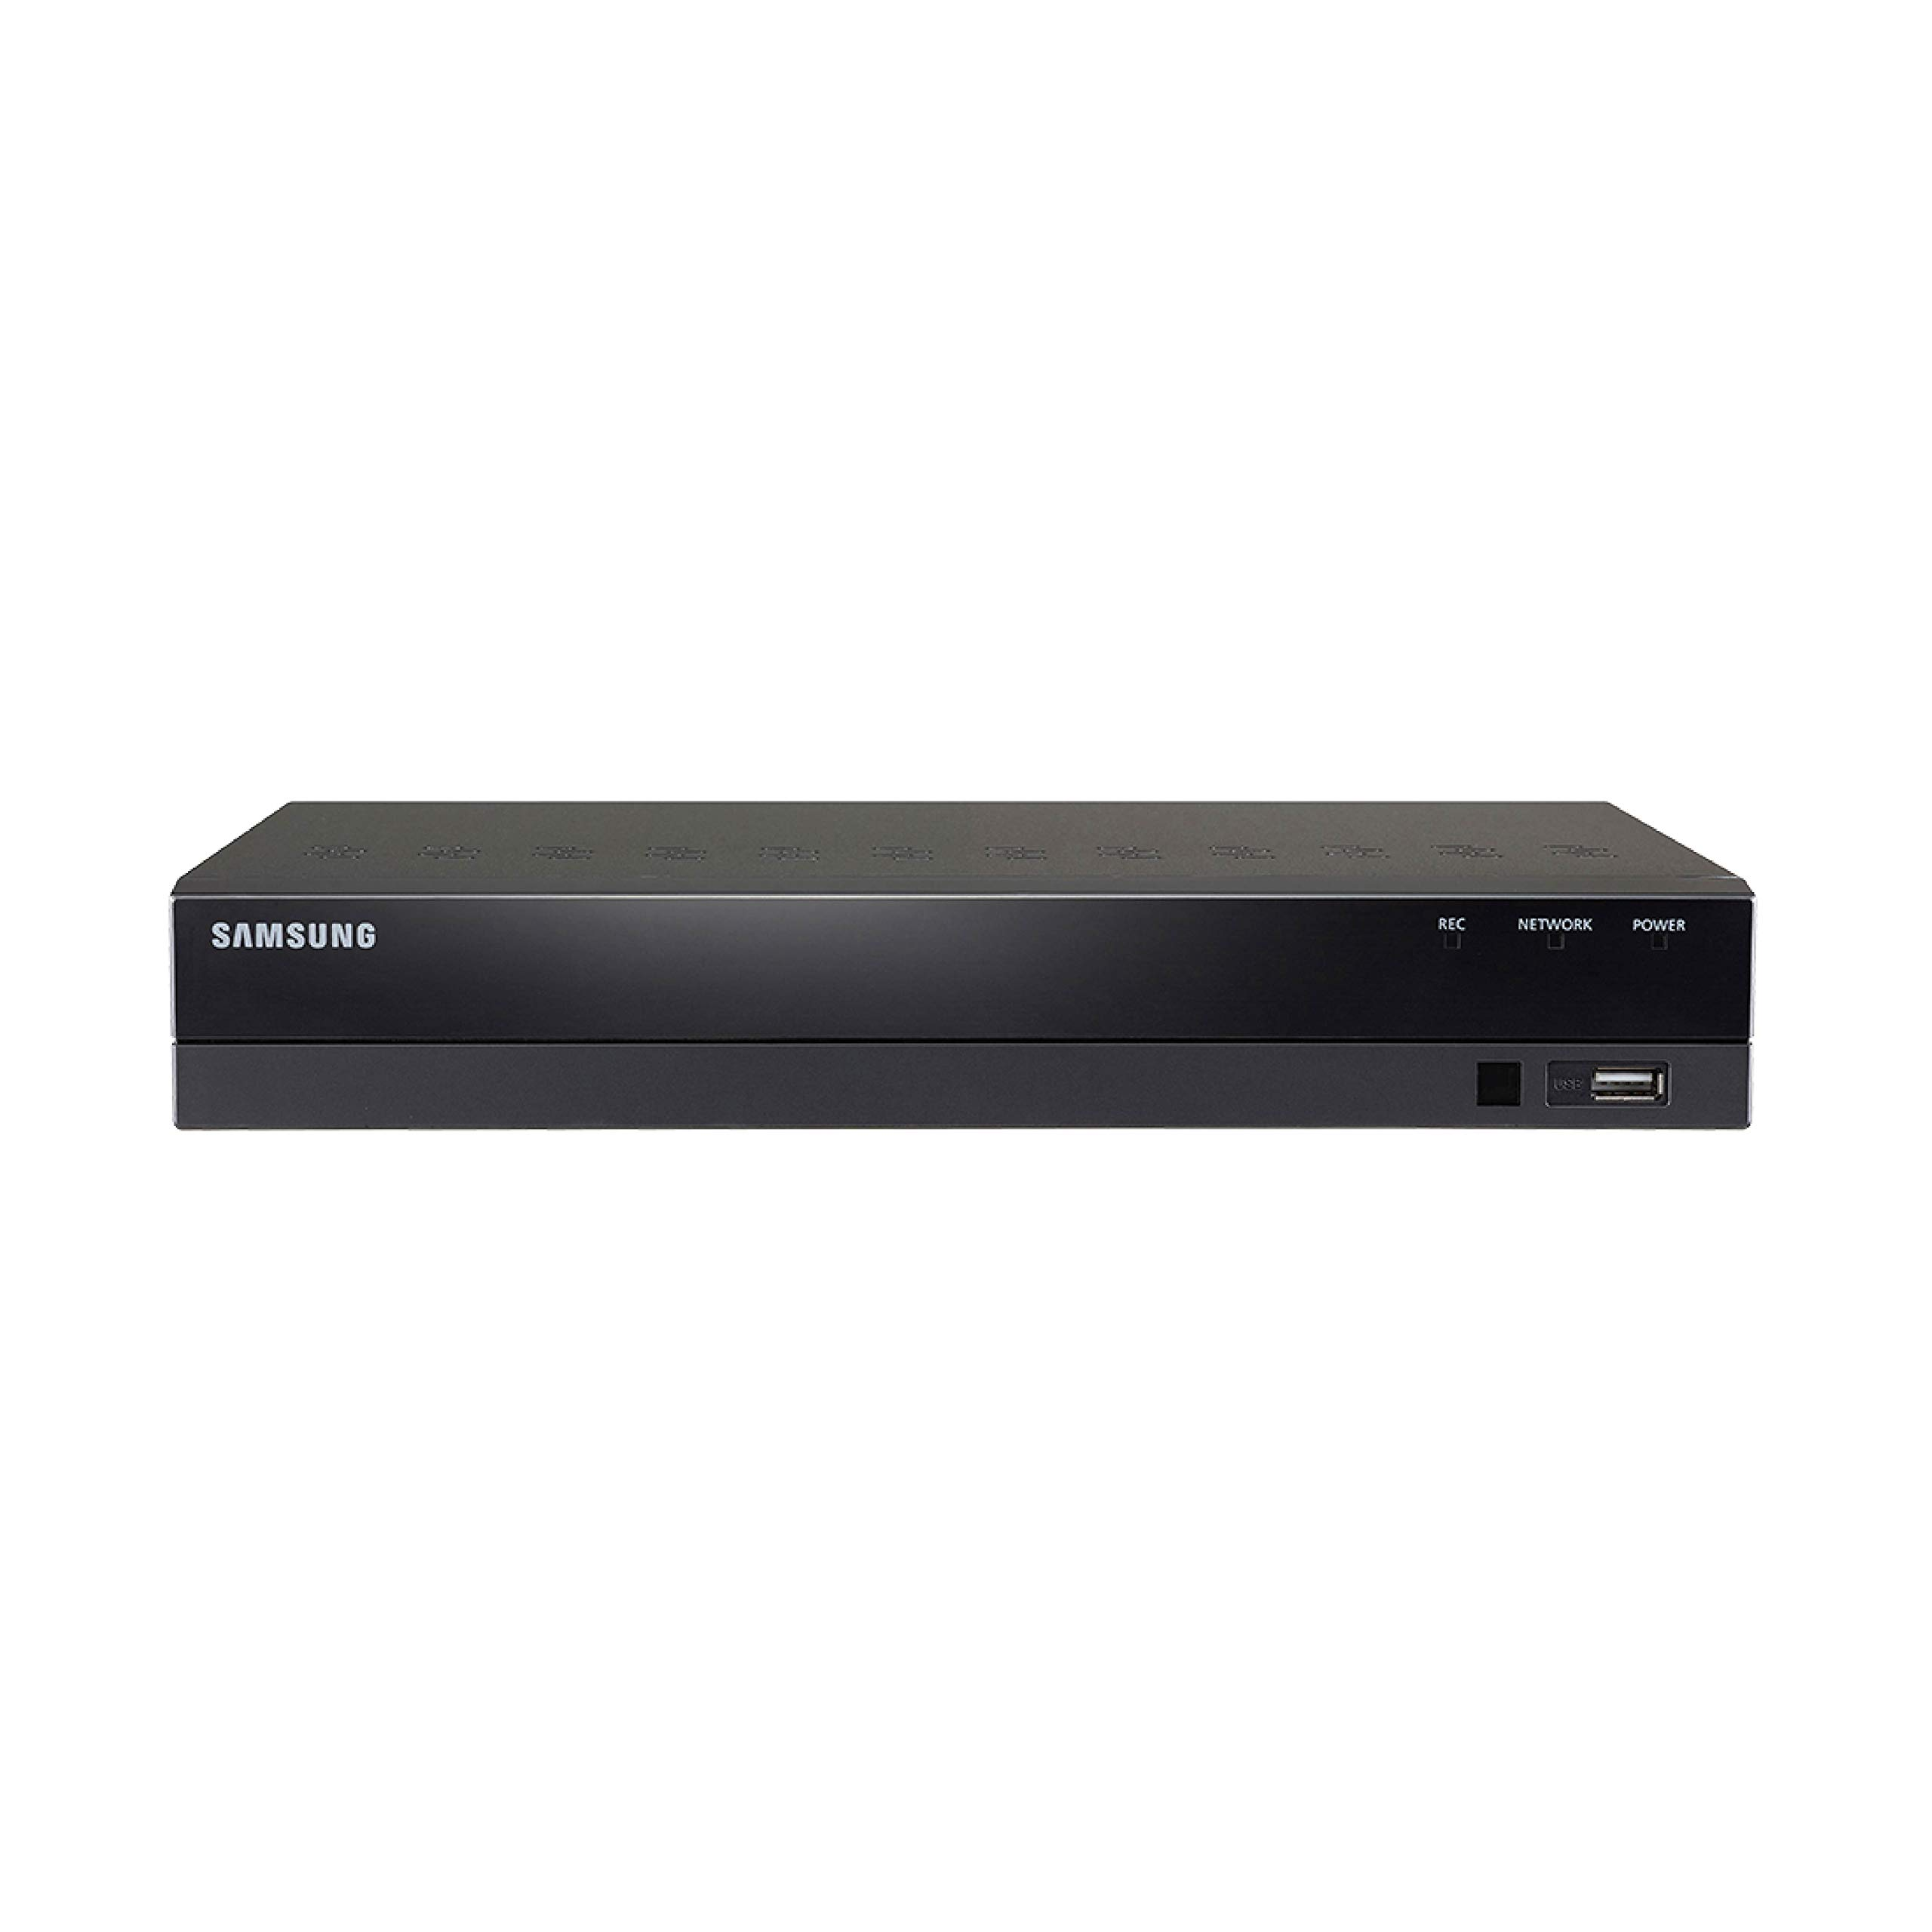 SDR-B74303N (1TB HDD) - Samsung Wisenet 8 Ch 1080p HD DVR from SDH-B74043B, SDH-B74043D (Renewed) by Samsung